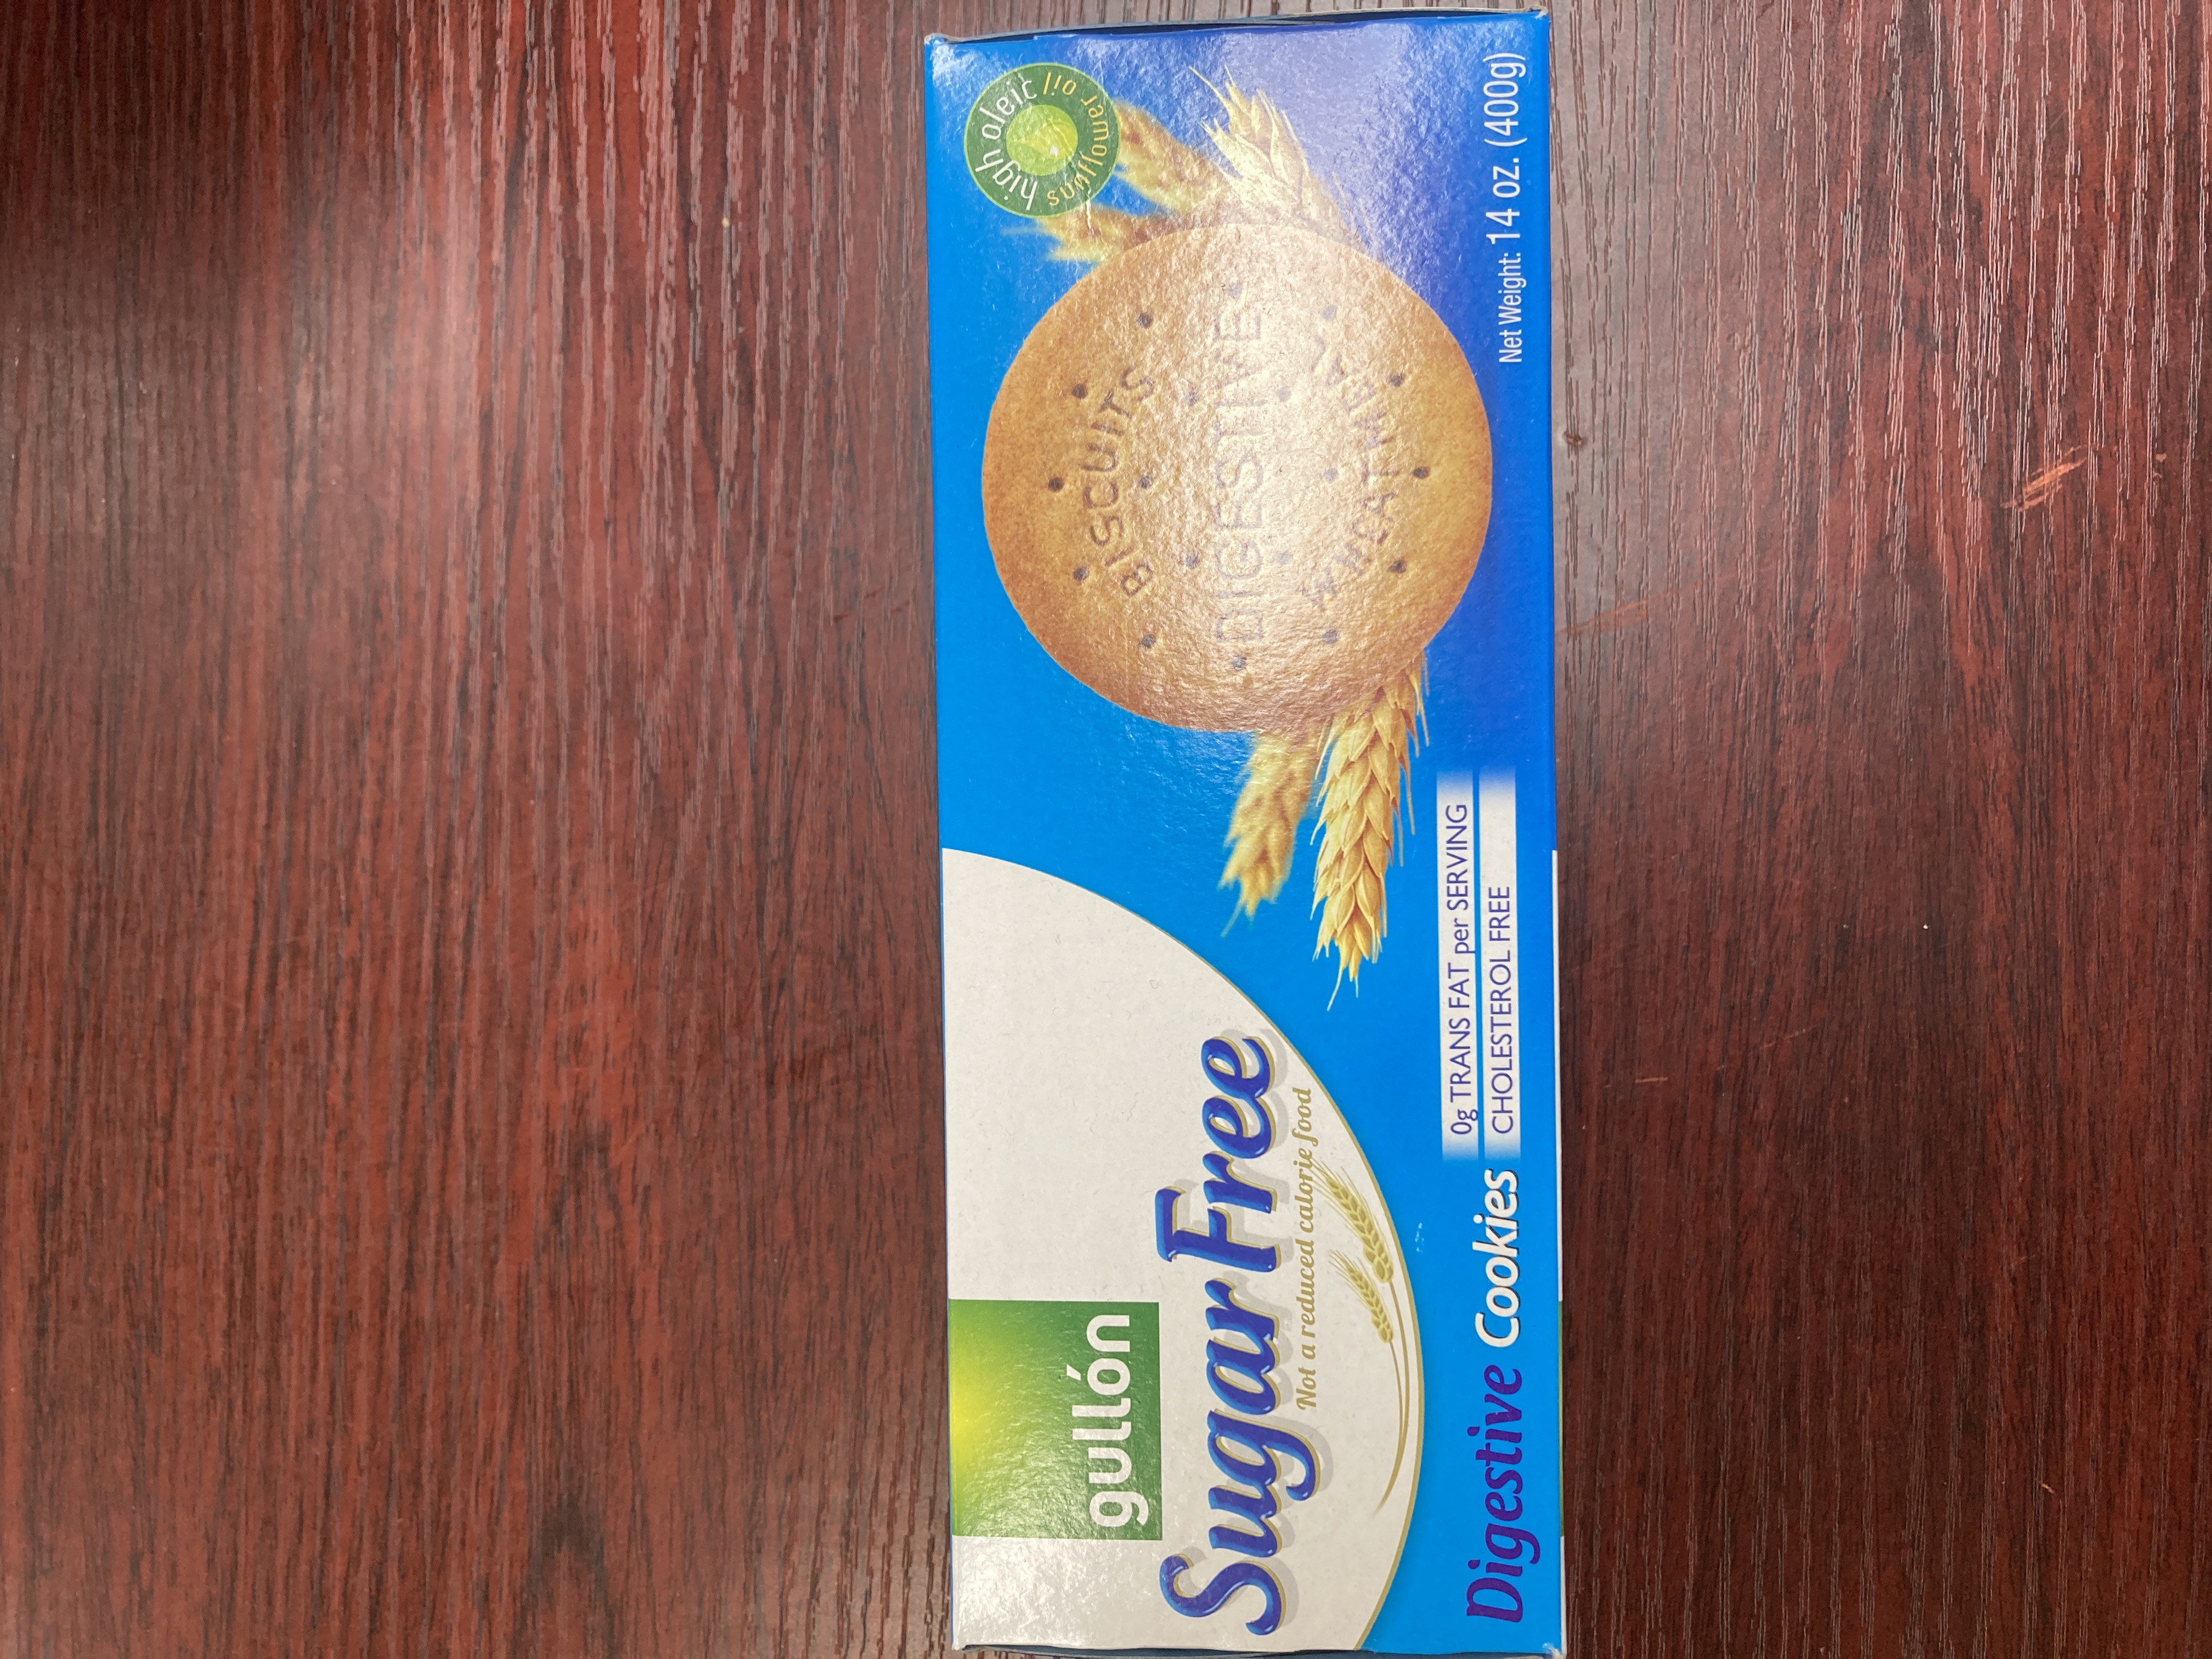 Gullon SugarFree Biscuits 400g